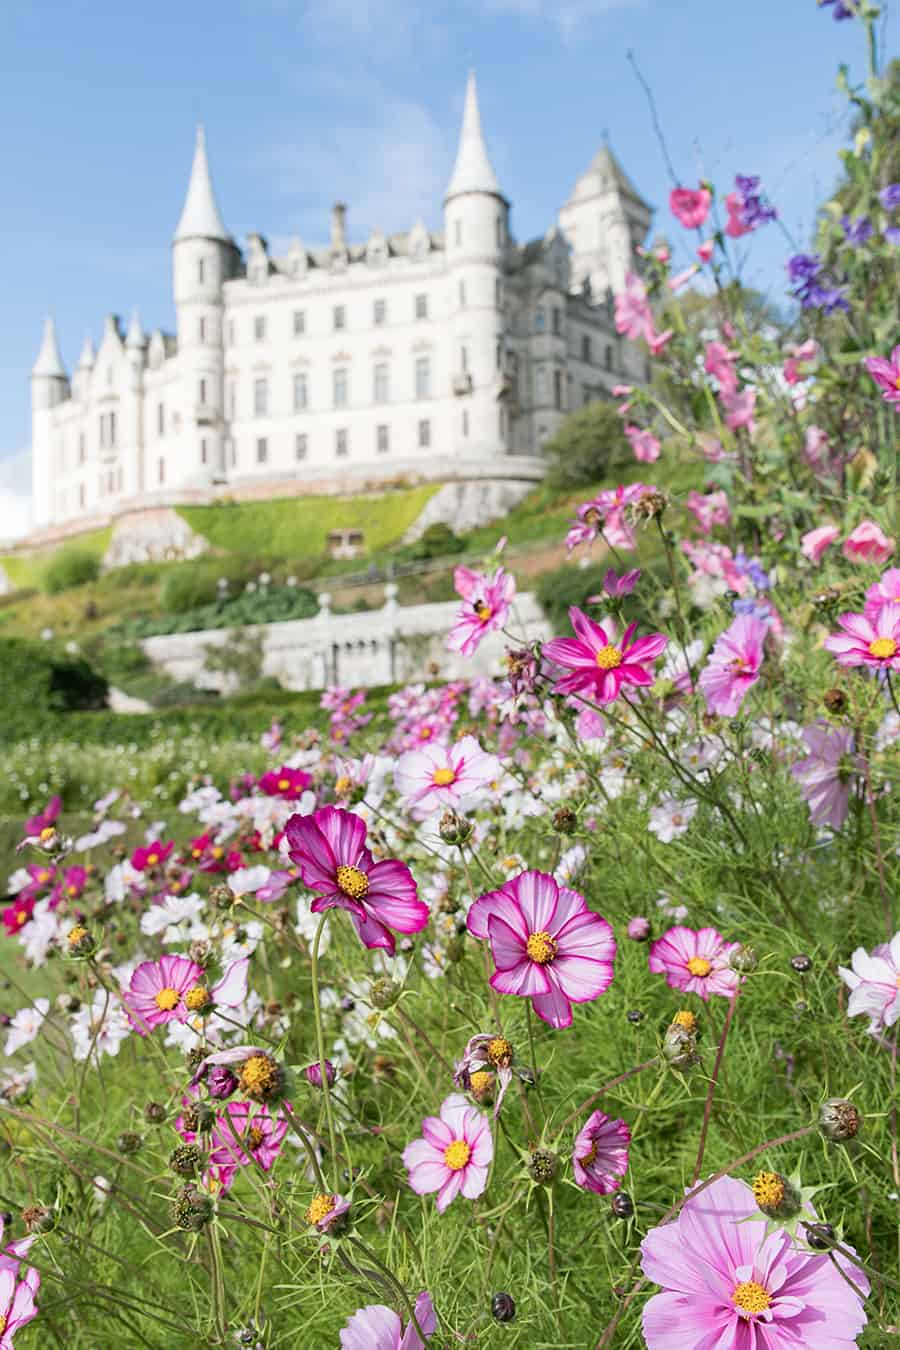 Pink flowers in front of Dunrobin Castle in Scotland.